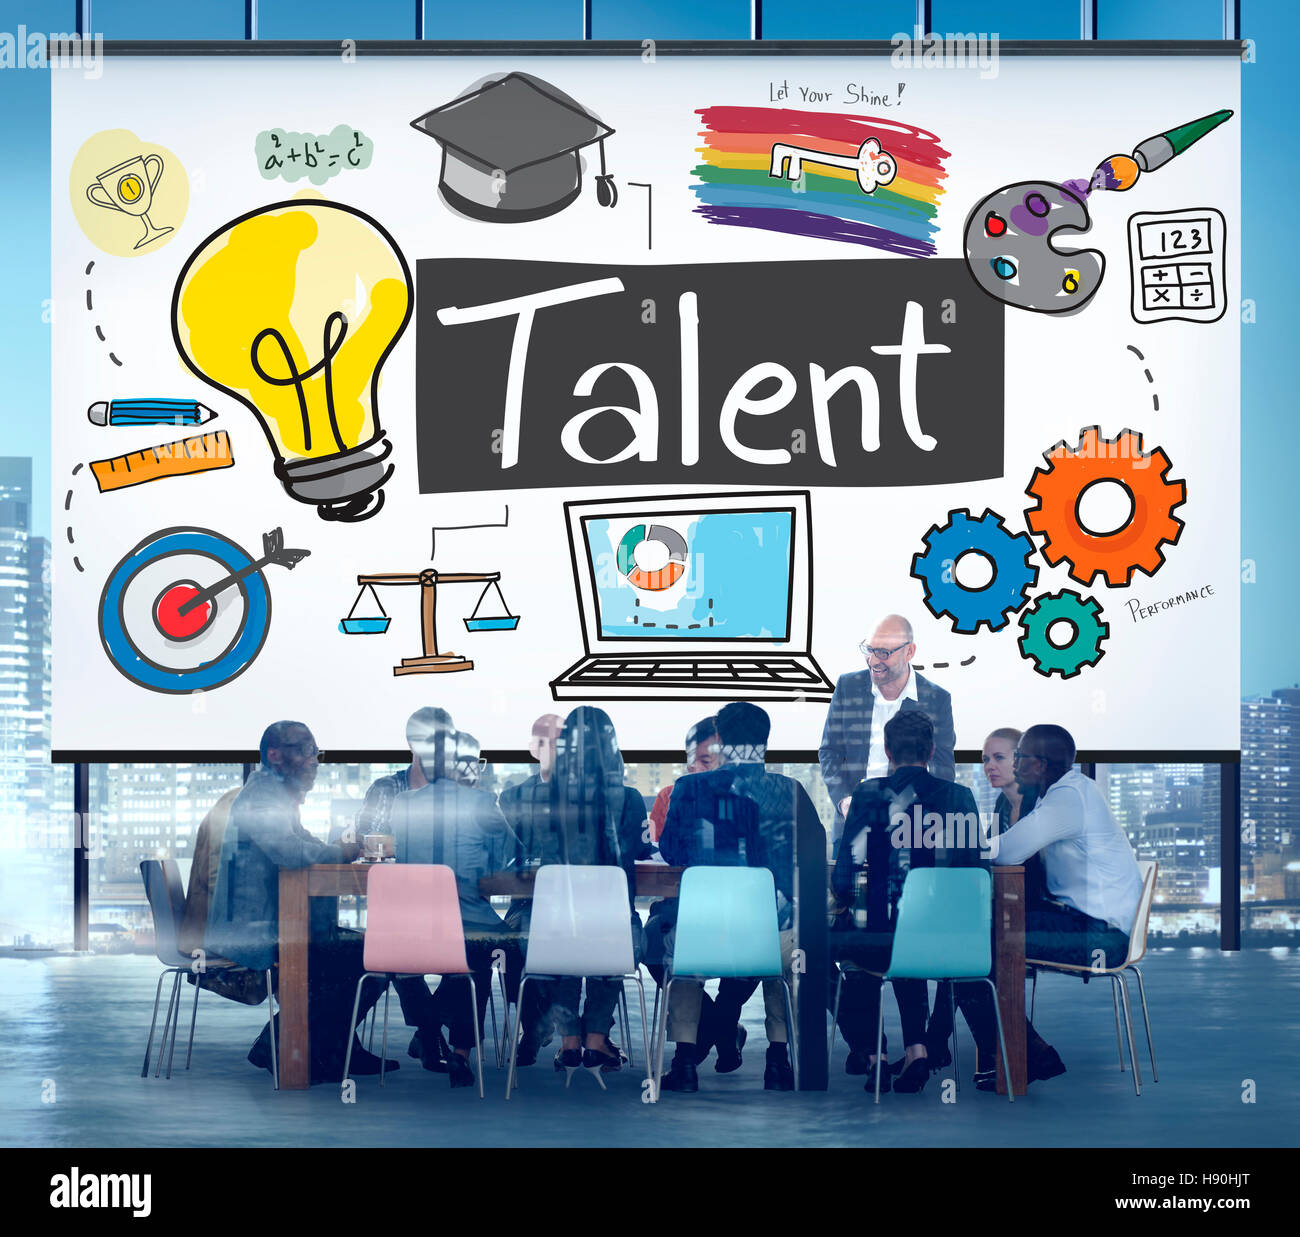 Talent Expertise Natural Skill Occupation Skills Concept Stock Photo